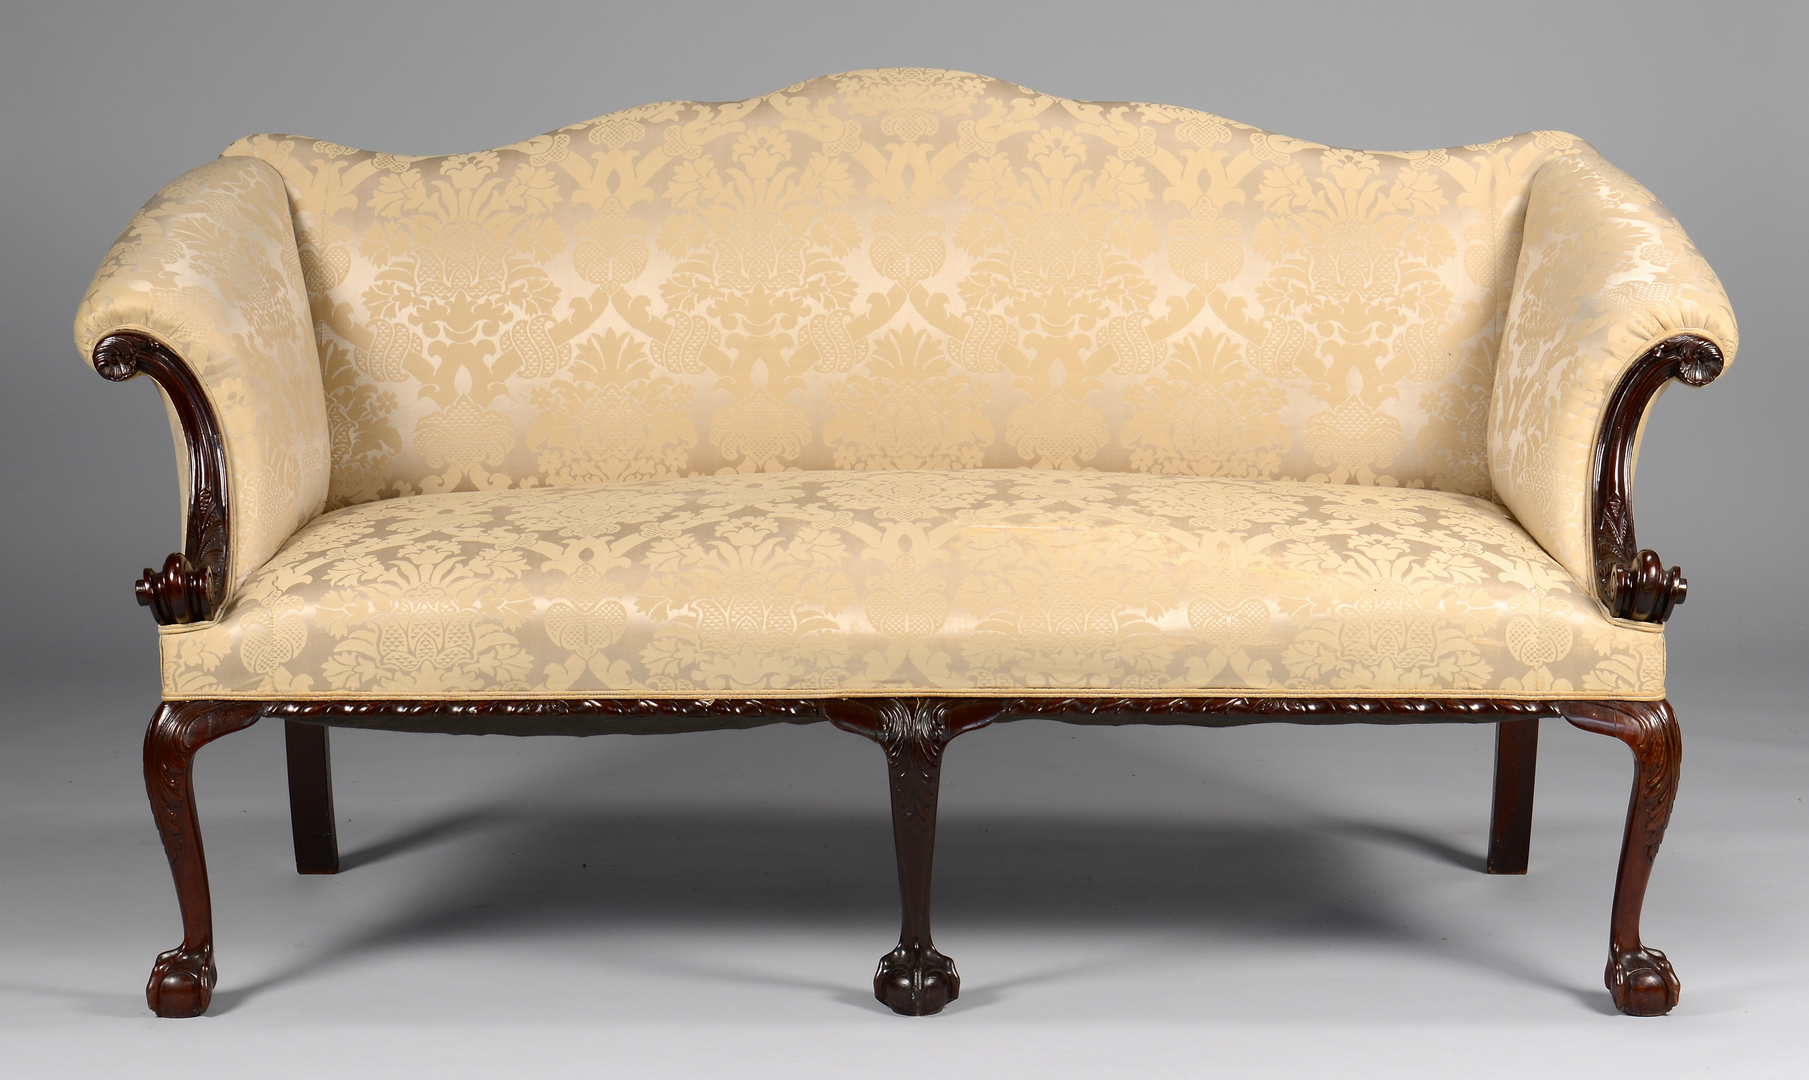 Lot 277 Centennial Irish Chippendale Sofa